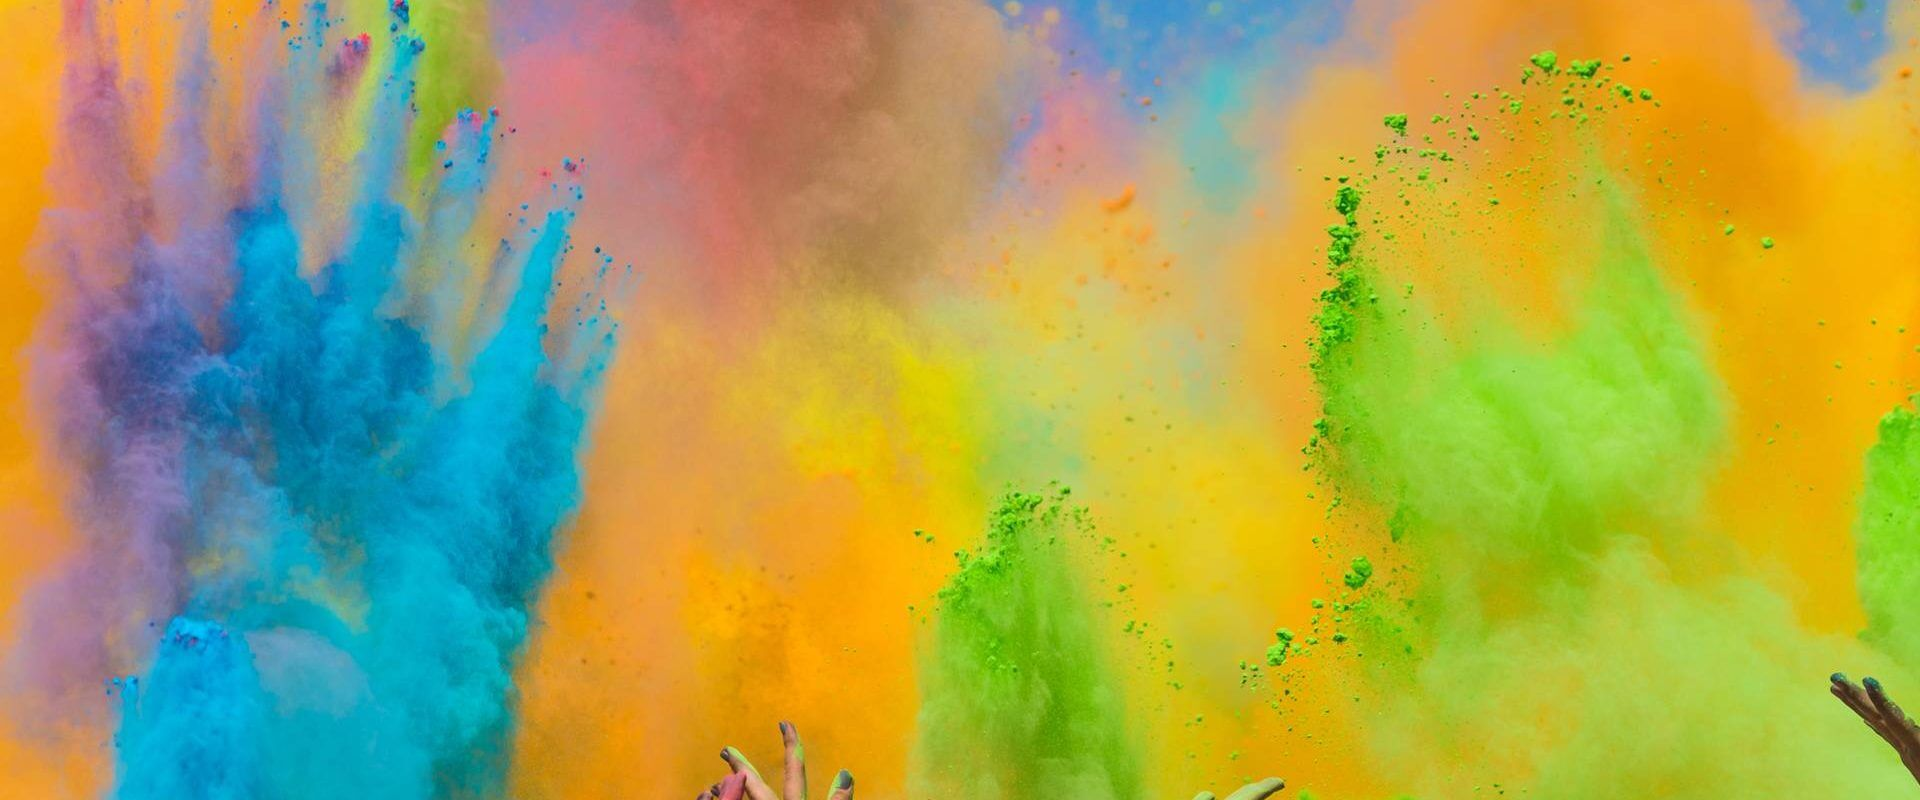 Colour Explosion School Fun Run parallax image